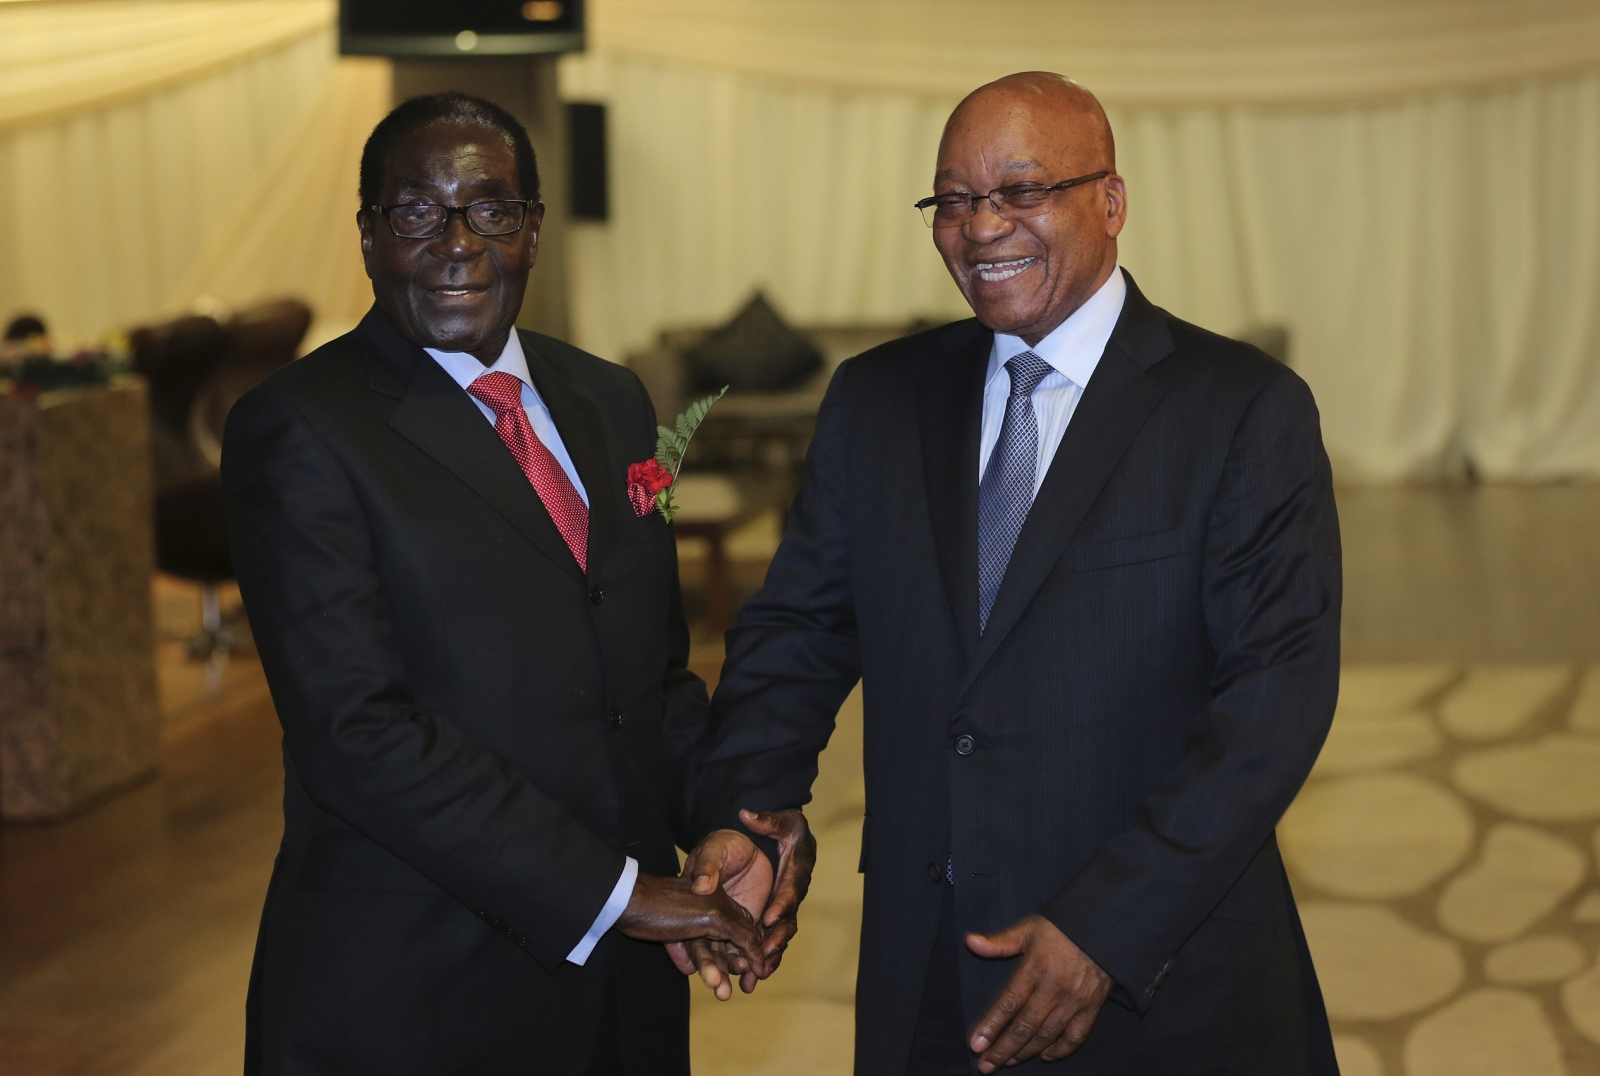 Robert Mugabe and Jacob Zuma